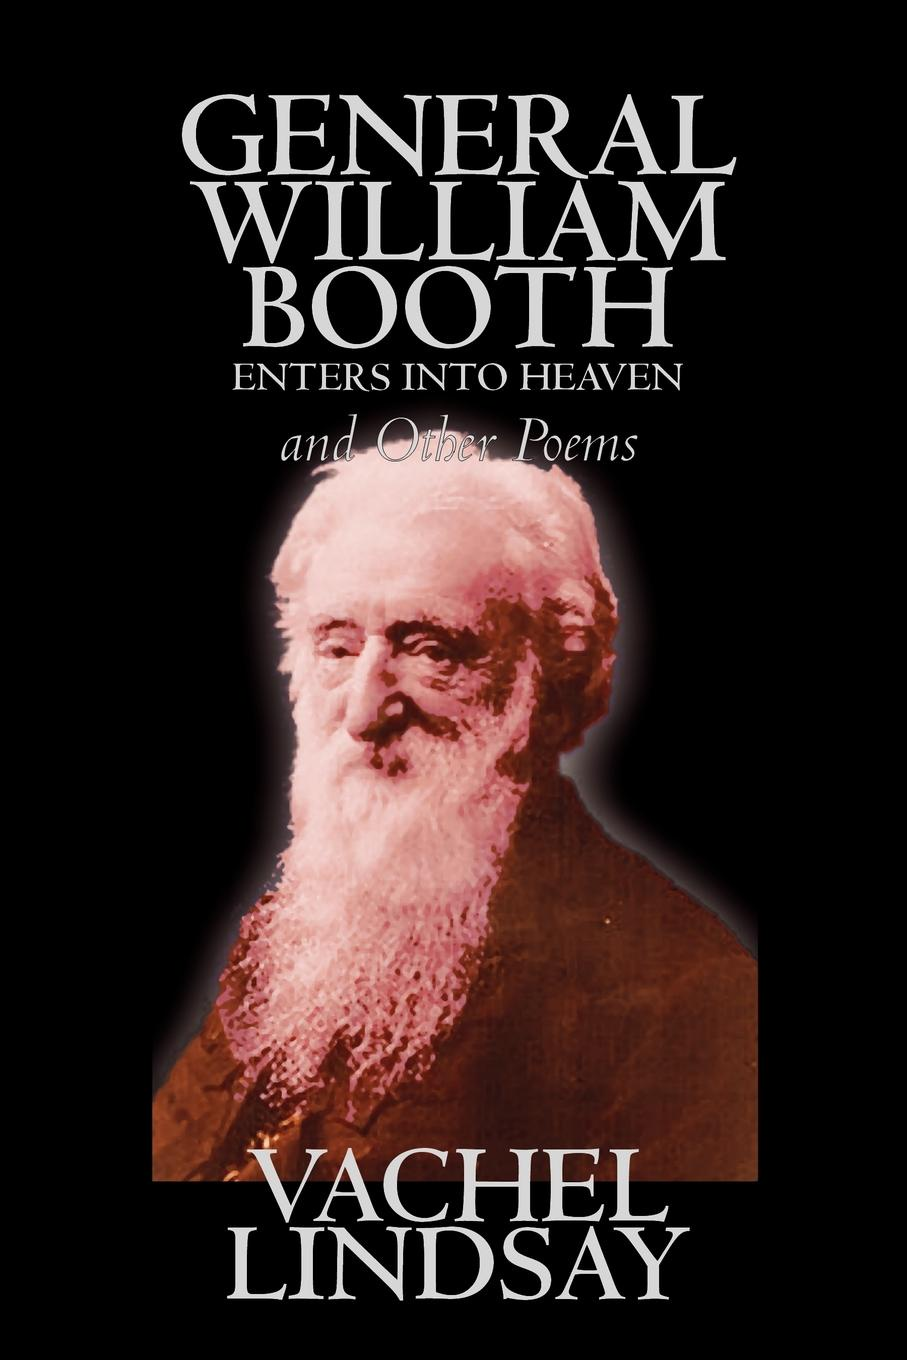 Vachel Lindsay General William Booth Enters into Heaven and Other Poems by Lindsay Vachel, Poetry, American the floor of heaven